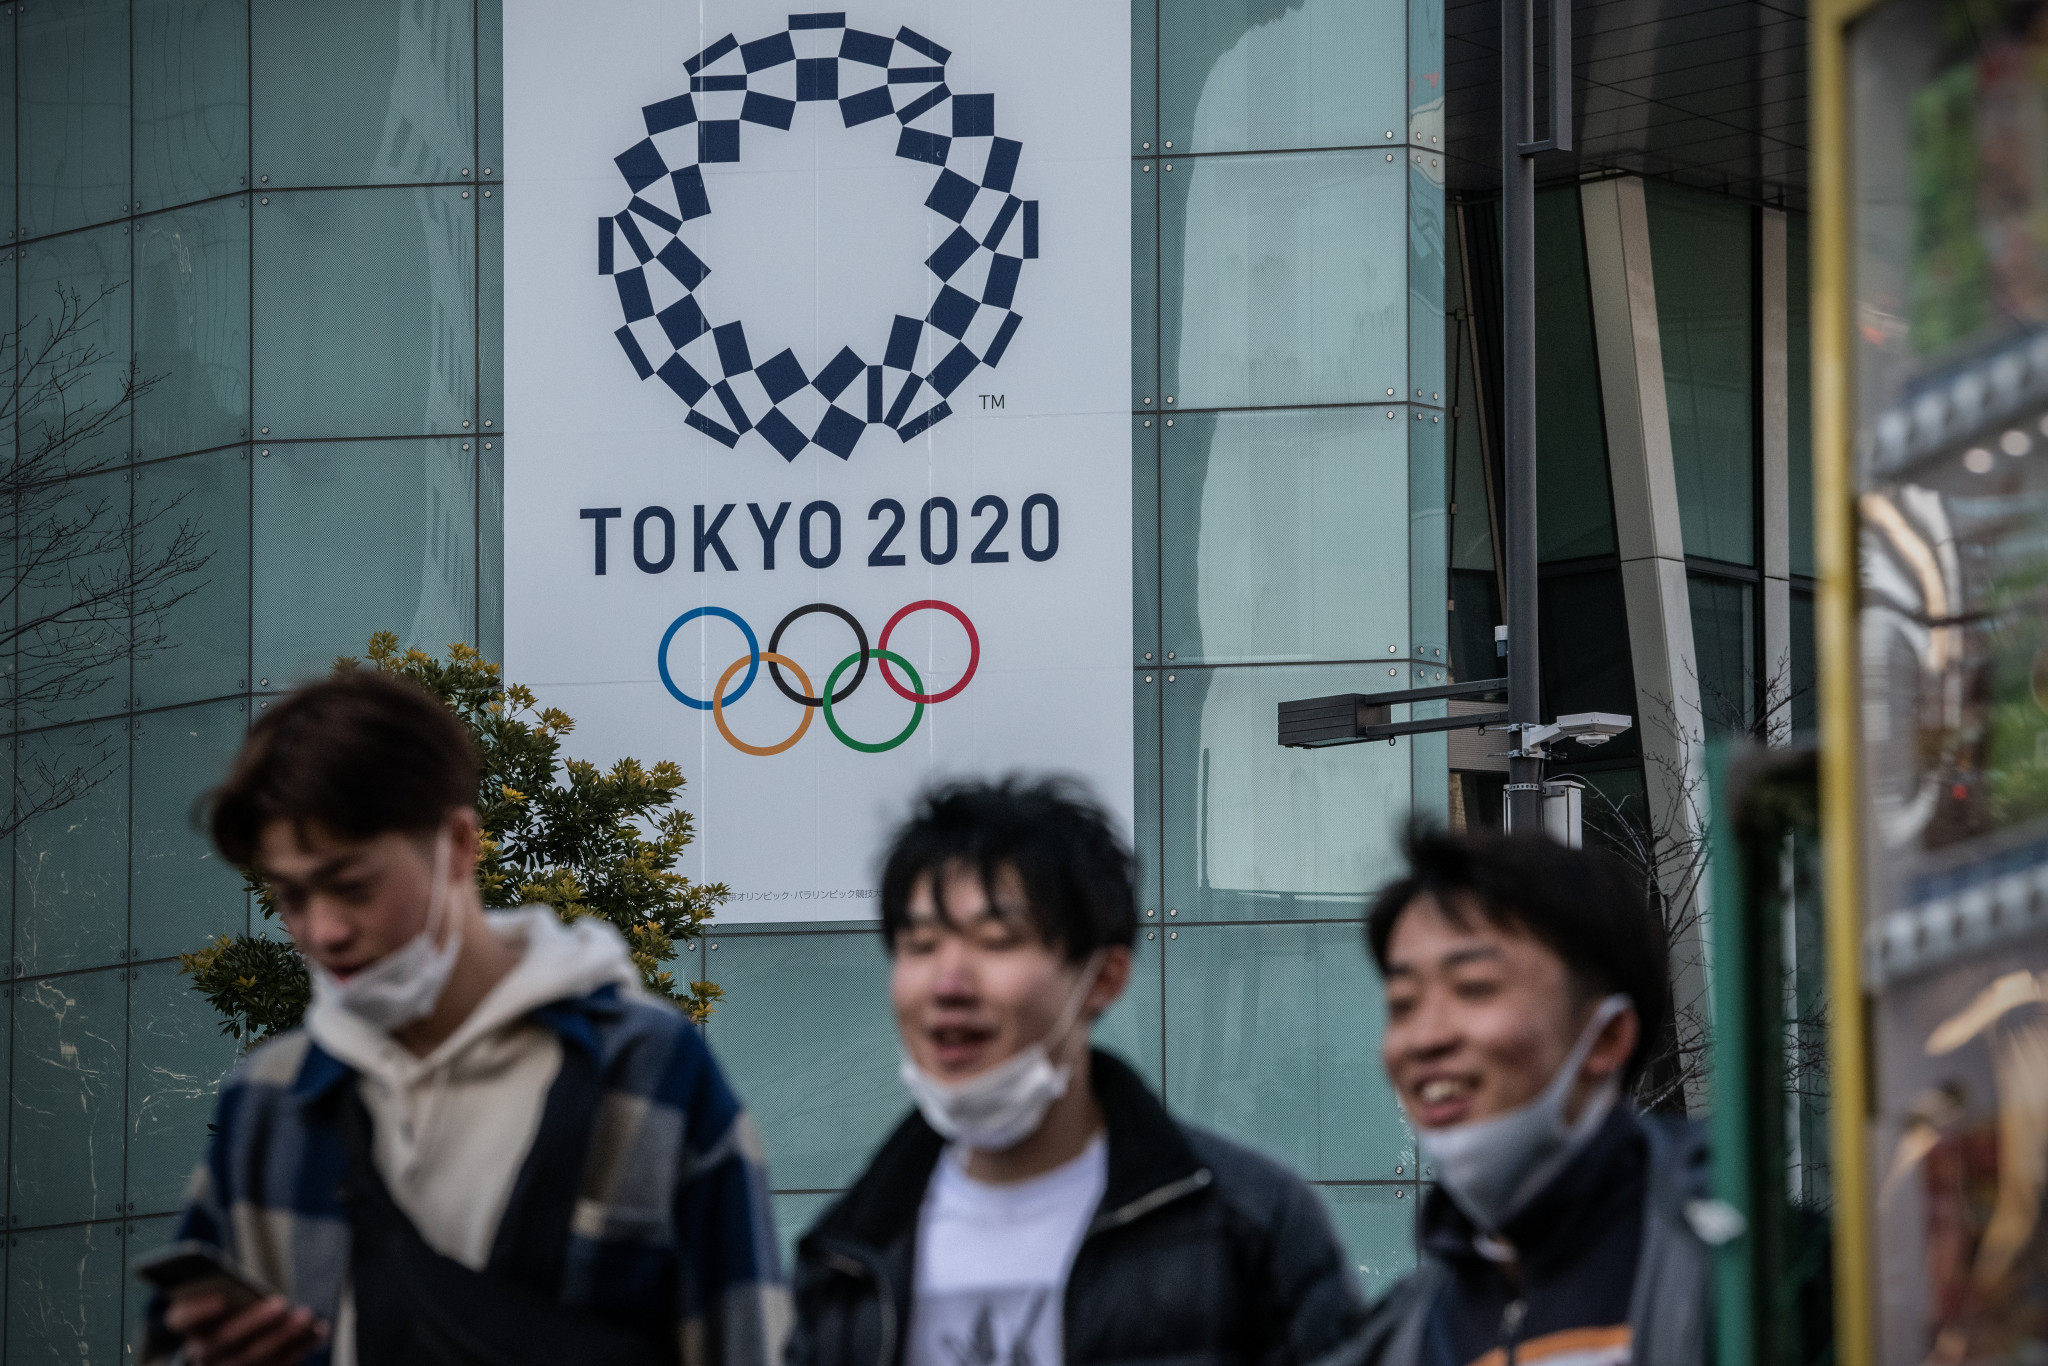 Tokyo 2020 volunteers receive apology after Mori's sexist comments